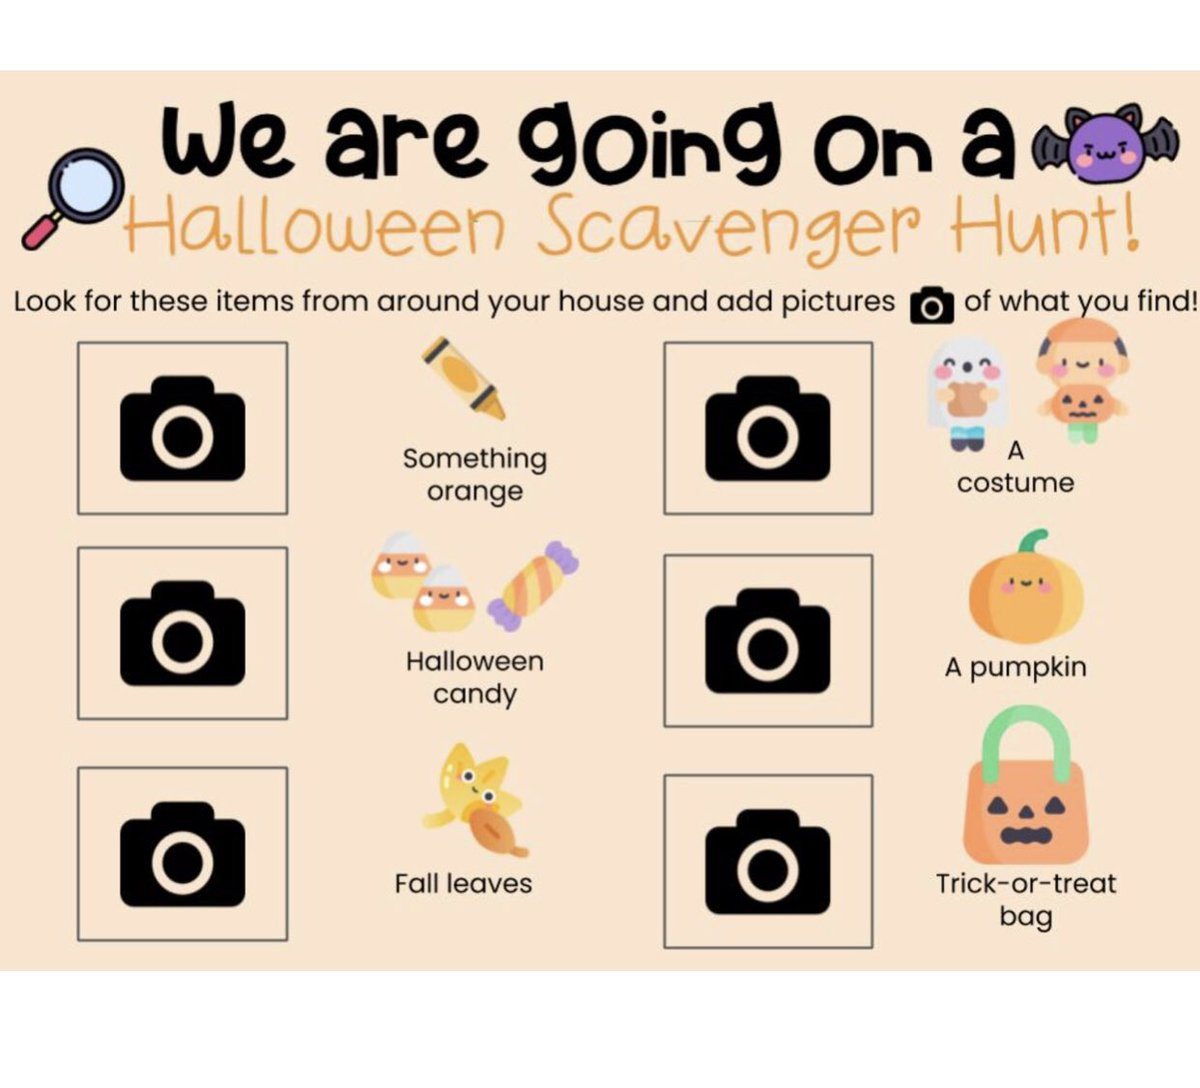 @bmartinreal I made this Halloween 🎃 scavenger hunt for @seesaw that we'll do remotely! https://t.co/PXPTIBWfWk https://t.co/Miwz0qQOmp